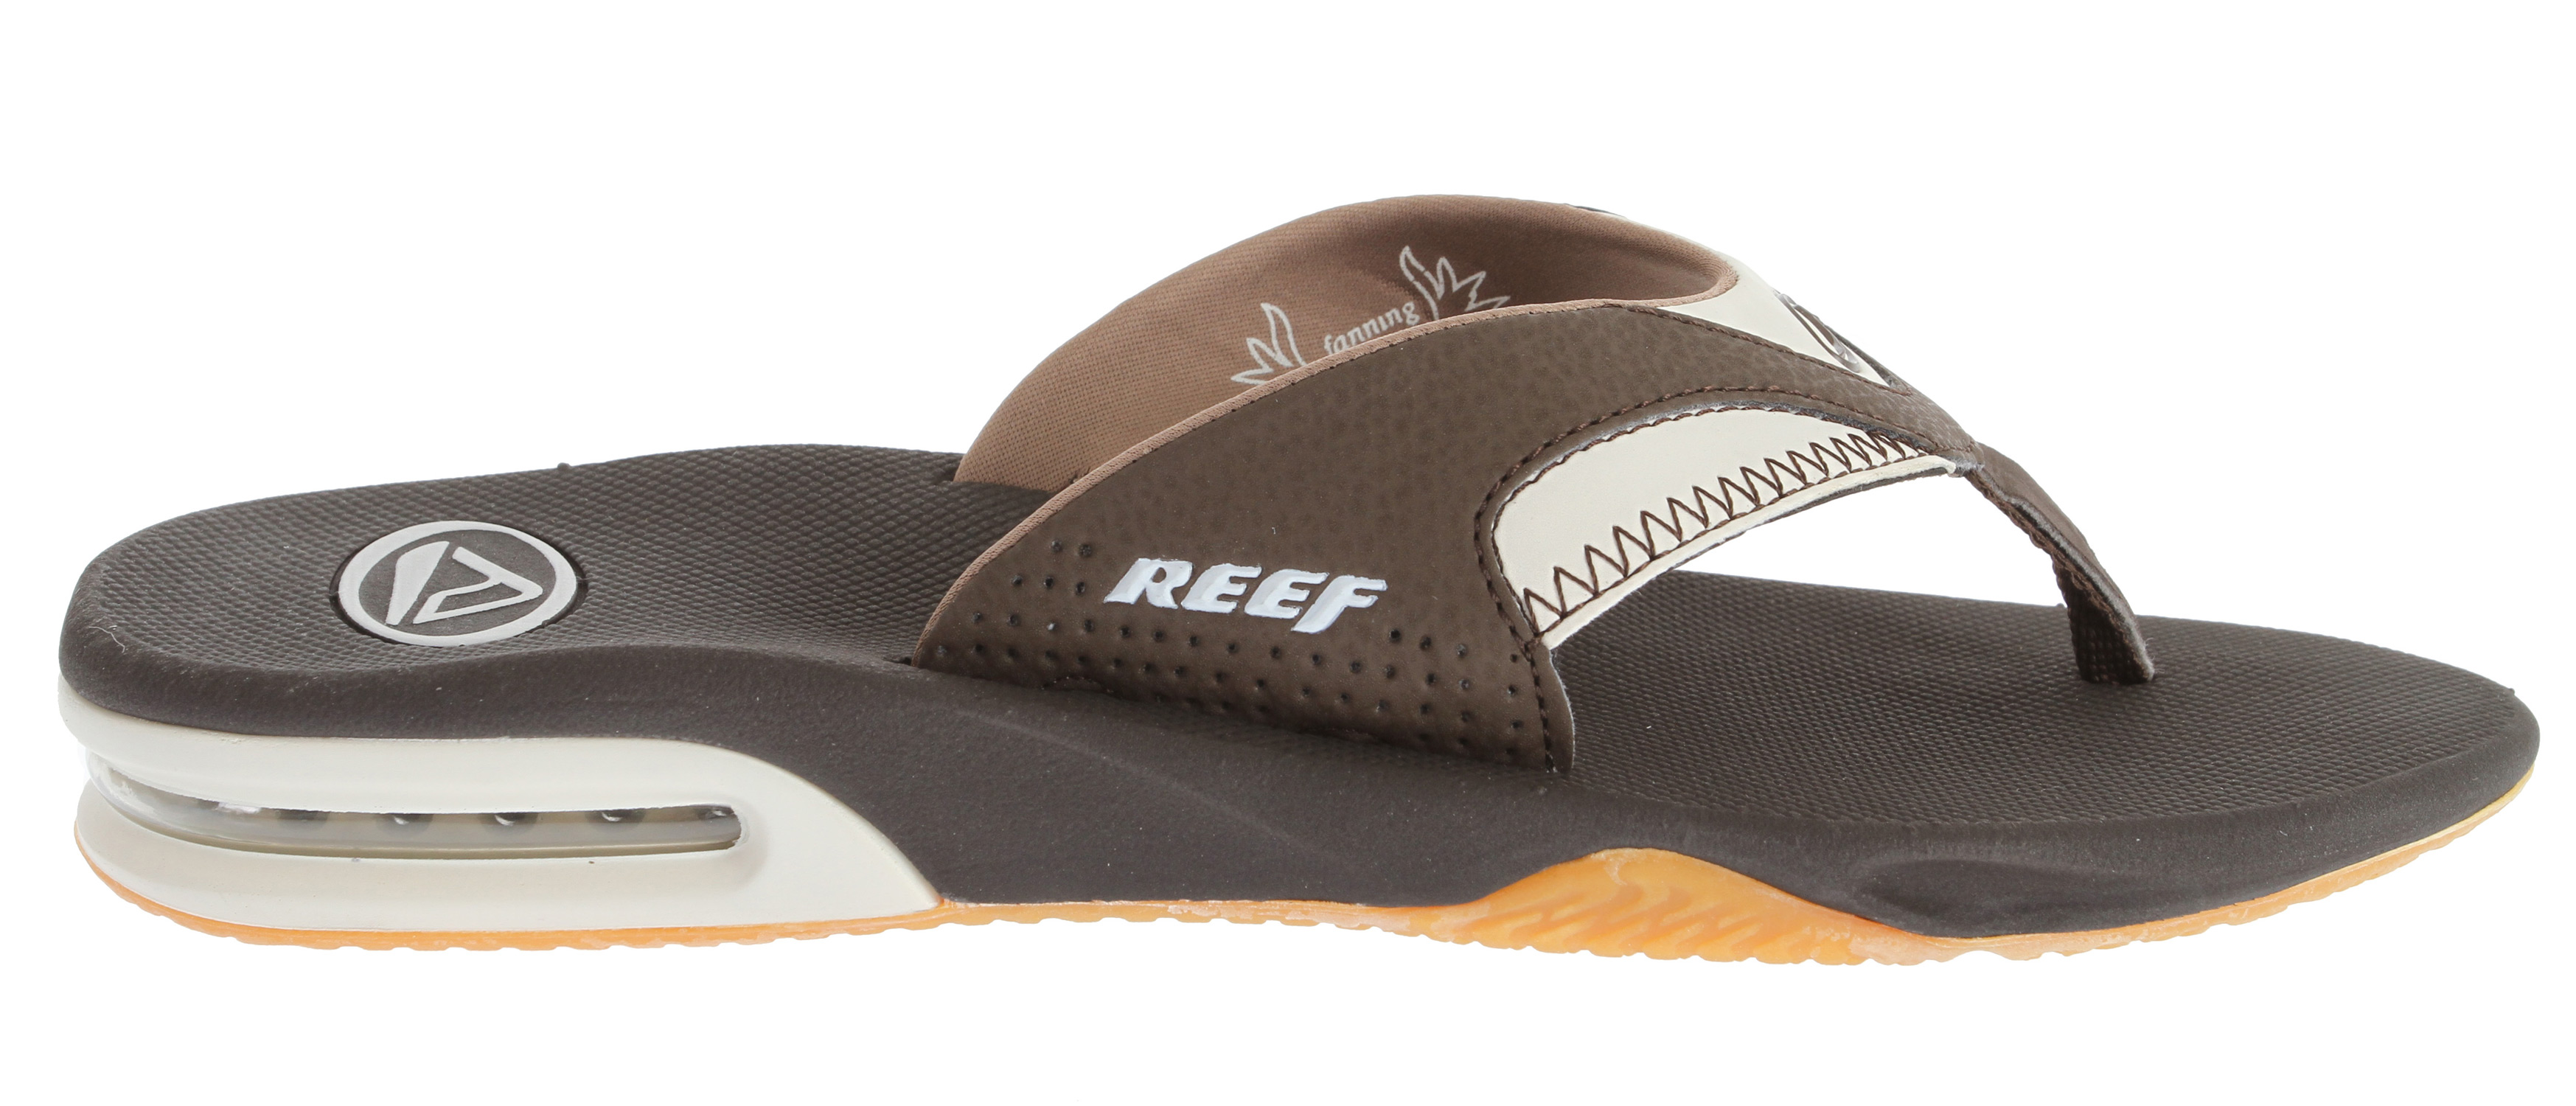 Surf Wearing the Fanning may not make you a pro like Mick Fanning, but these sandals are designed for a pro's adventurous lifestyle, with built in arch support for ultimate comfort, made water-friendly, and church key on the bottom of your sandal so your never unprepared for your journeys. Key Features of the Reef Fanning Sandals: Comfortable, water friendly synthetic nubuck upper Contoured compression molded eva footbed with anatomical arch support Full 360degrees heel airbag enclosed in soft polyurethane Thirst quenching technology (church key bottle opener on the outsole) Reef icon herringbone rubber outsole - $32.95